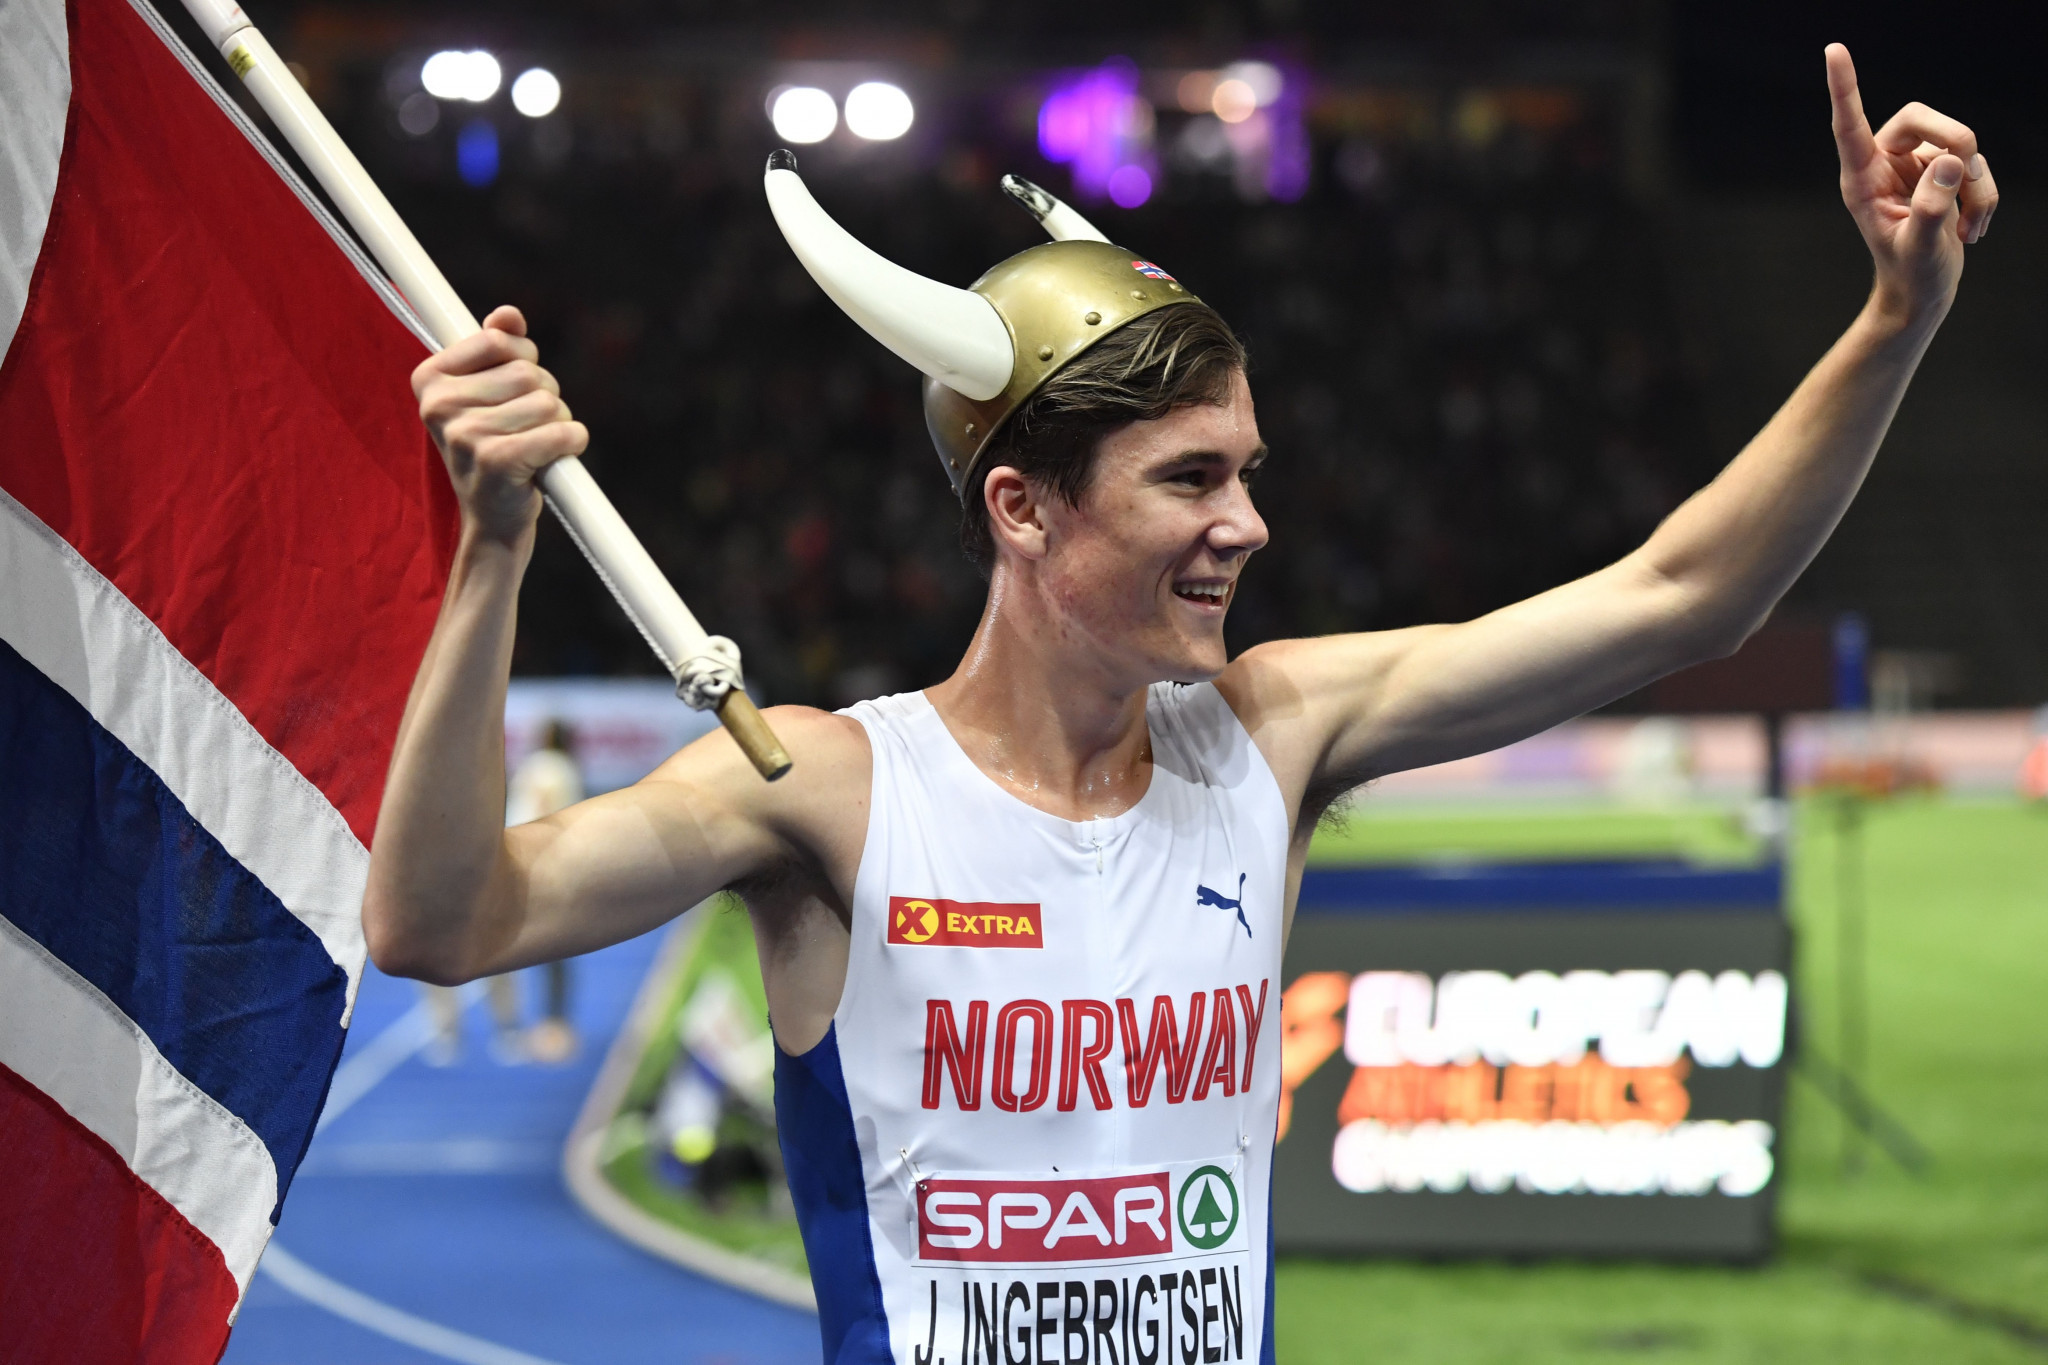 Jakob Ingebrigtsen, 17, comes of age in 1500m as youngest European track champion